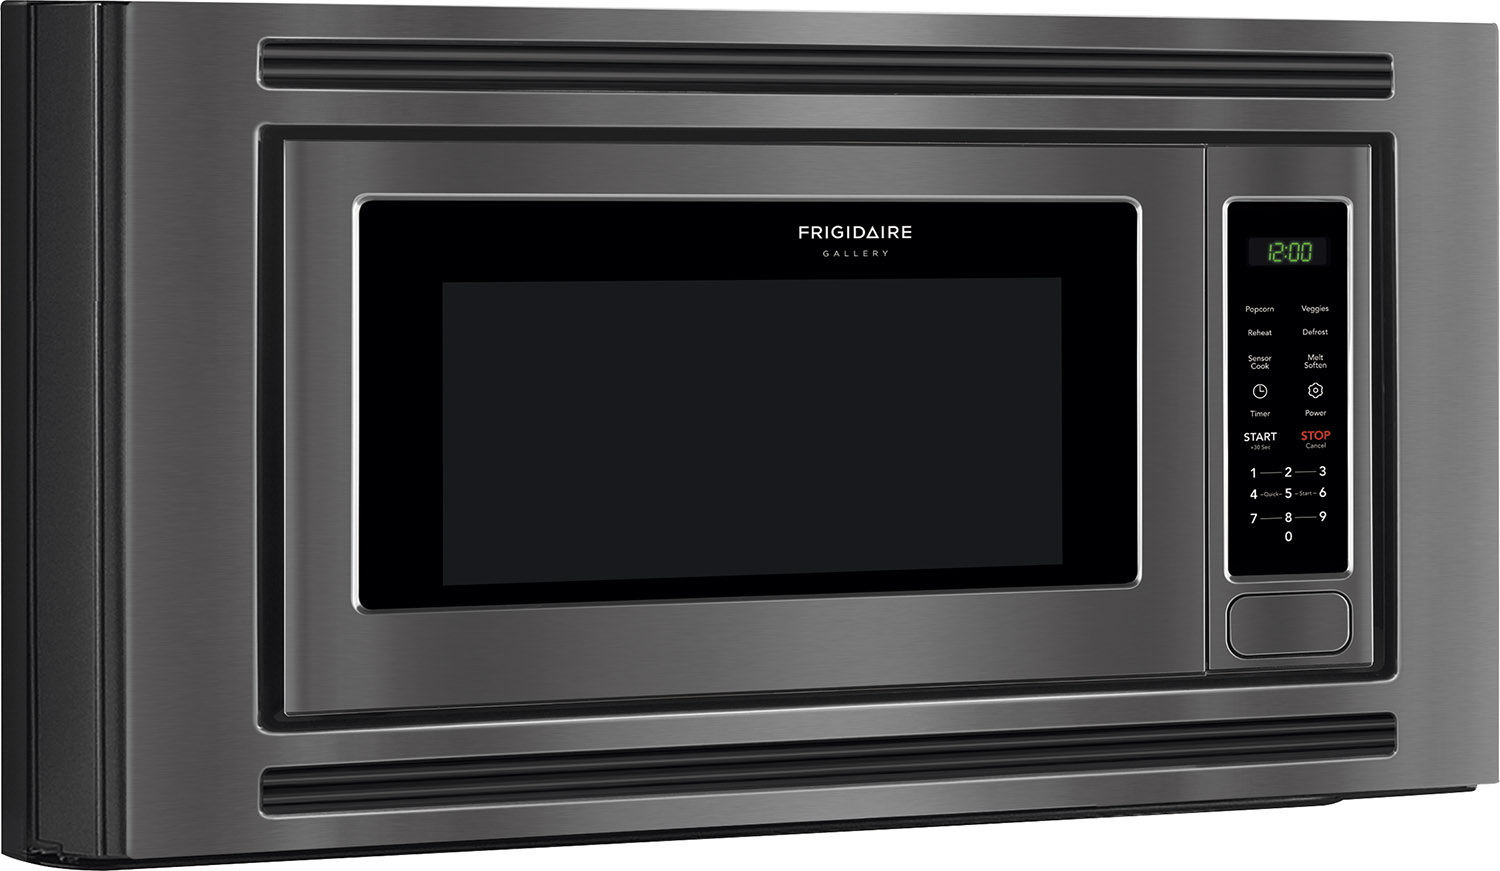 Frigidaire Gallery Built In Microwave Black Stainless Fgmo206ntd